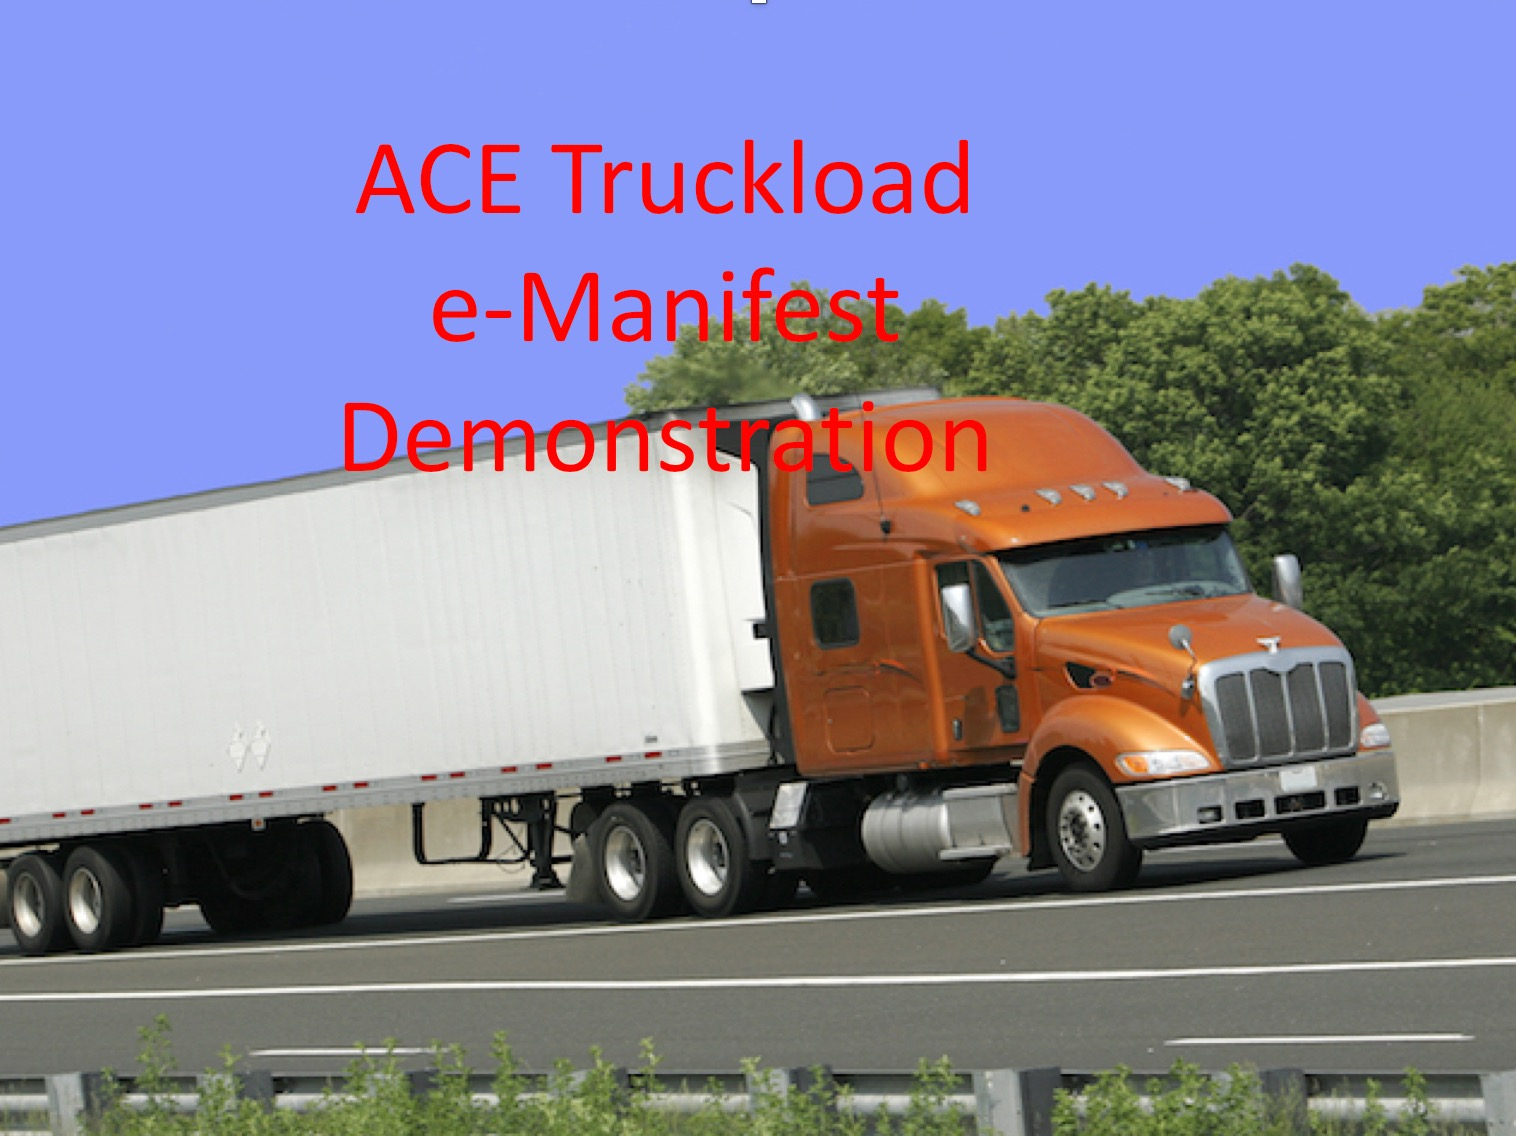 ACE Truckload Demonstration